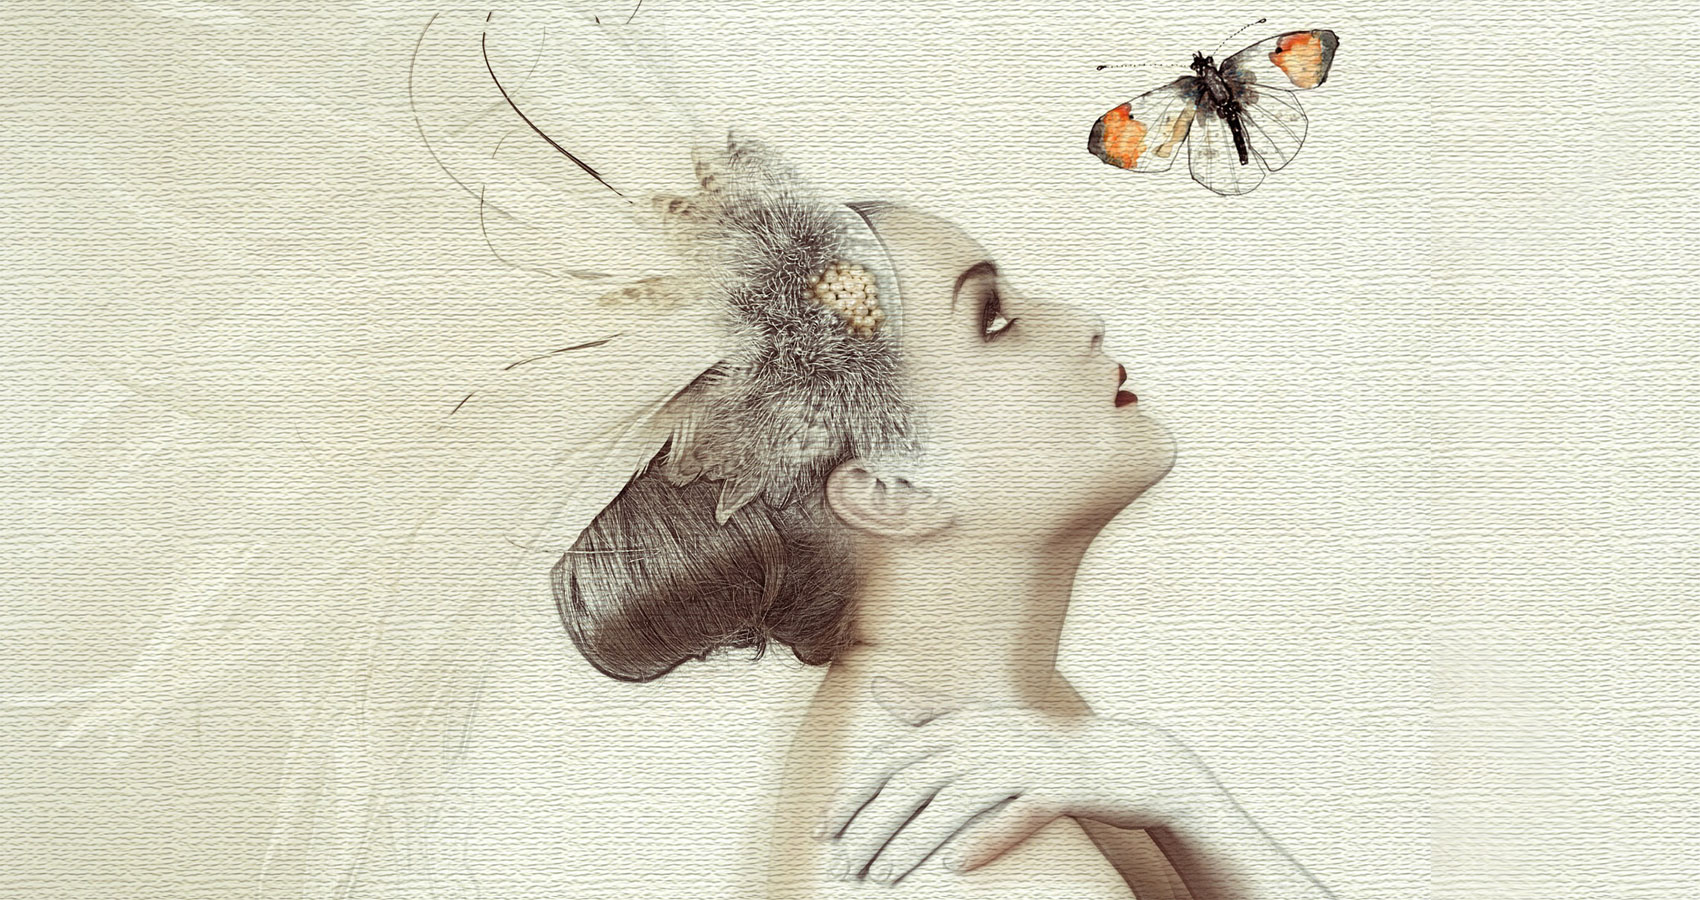 METAMORPHOSED TO LOVE, written by Orlando Blake at Spillwords.com